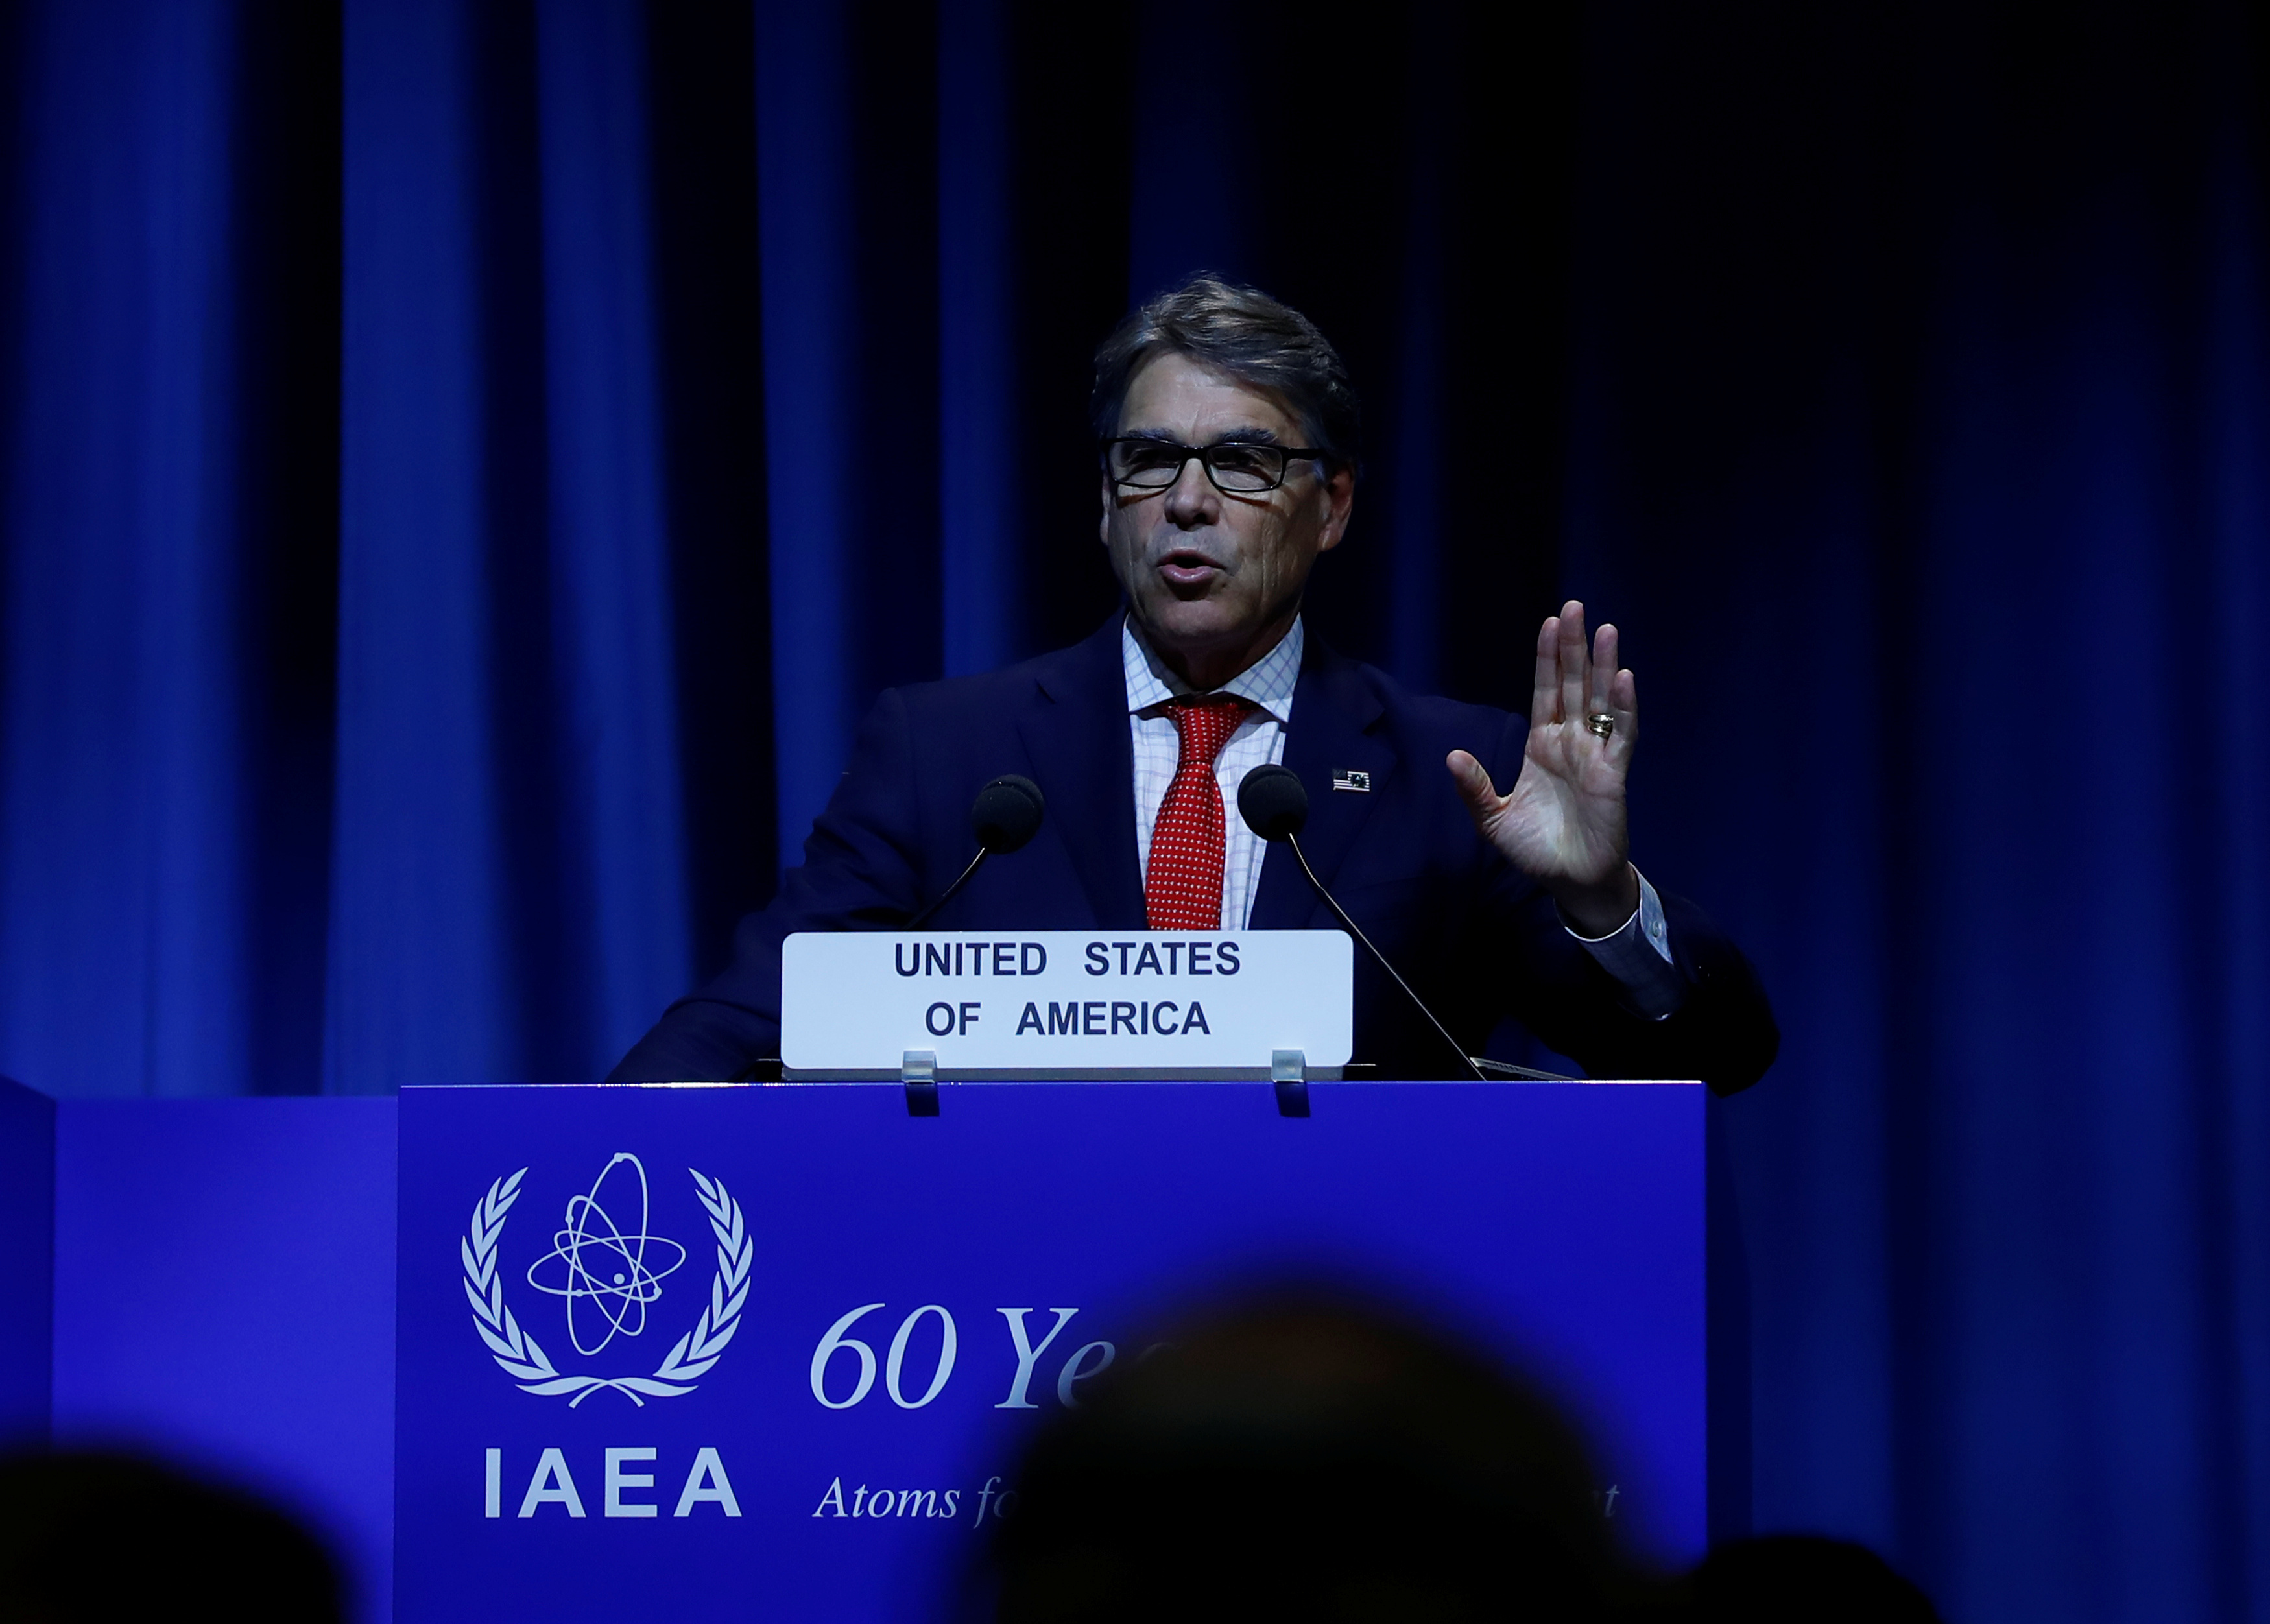 US Energy Secretary Rick Perry attends the opening of the International Atomic Energy Agency (IAEA) General Conference at their headquarters in Vienna, Austria on Sept. 18, 2017. (REUTERS/Leonhard Foeger)